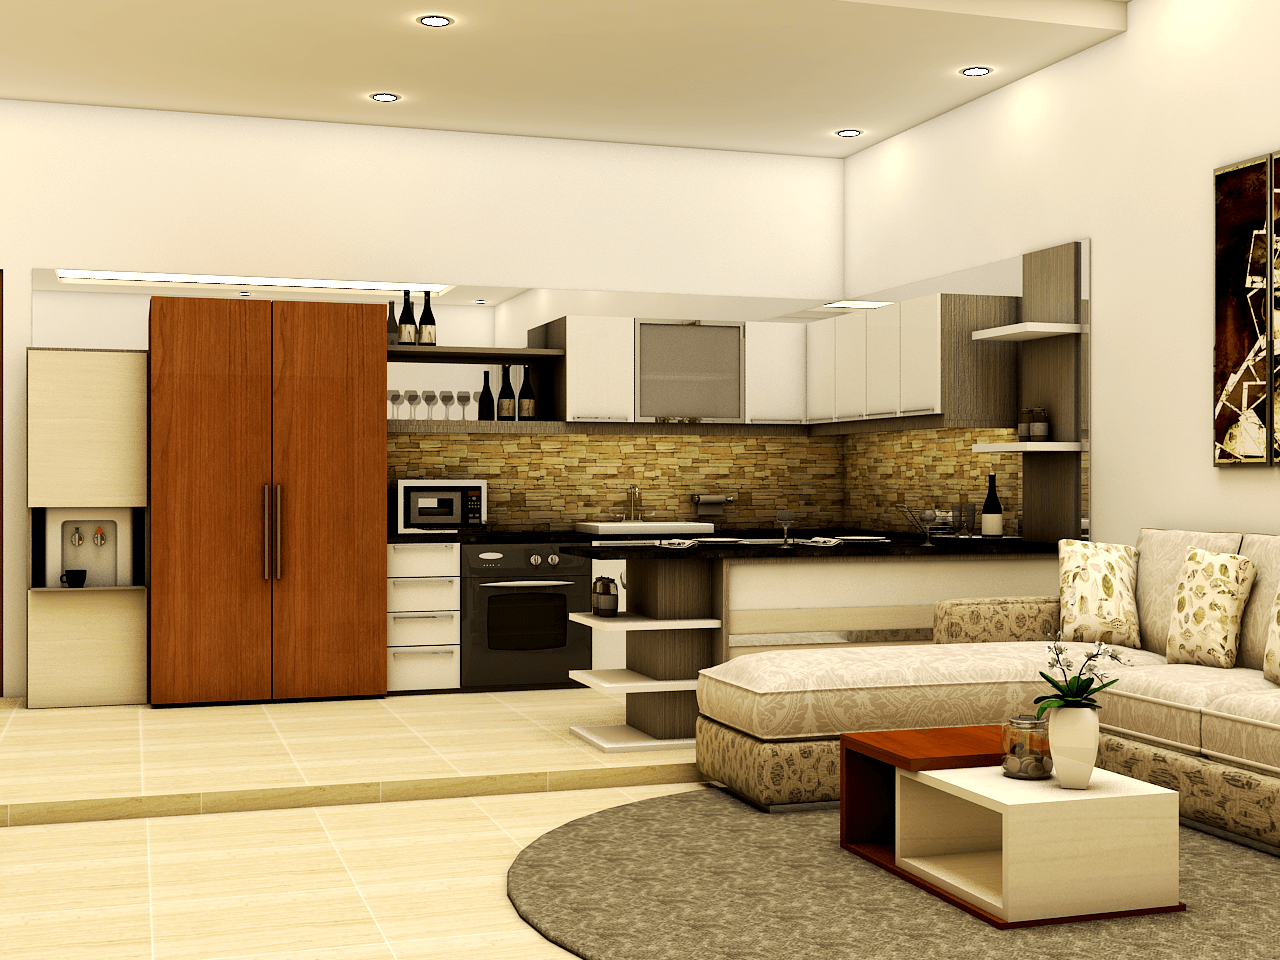 photo-kitchen-set-dan-meja-bar-modern-kontemporer-kitchen-set-dan-meja-bar-modern-kontemporer-desain-arsitek-oleh-arteta-interior-design-furniture